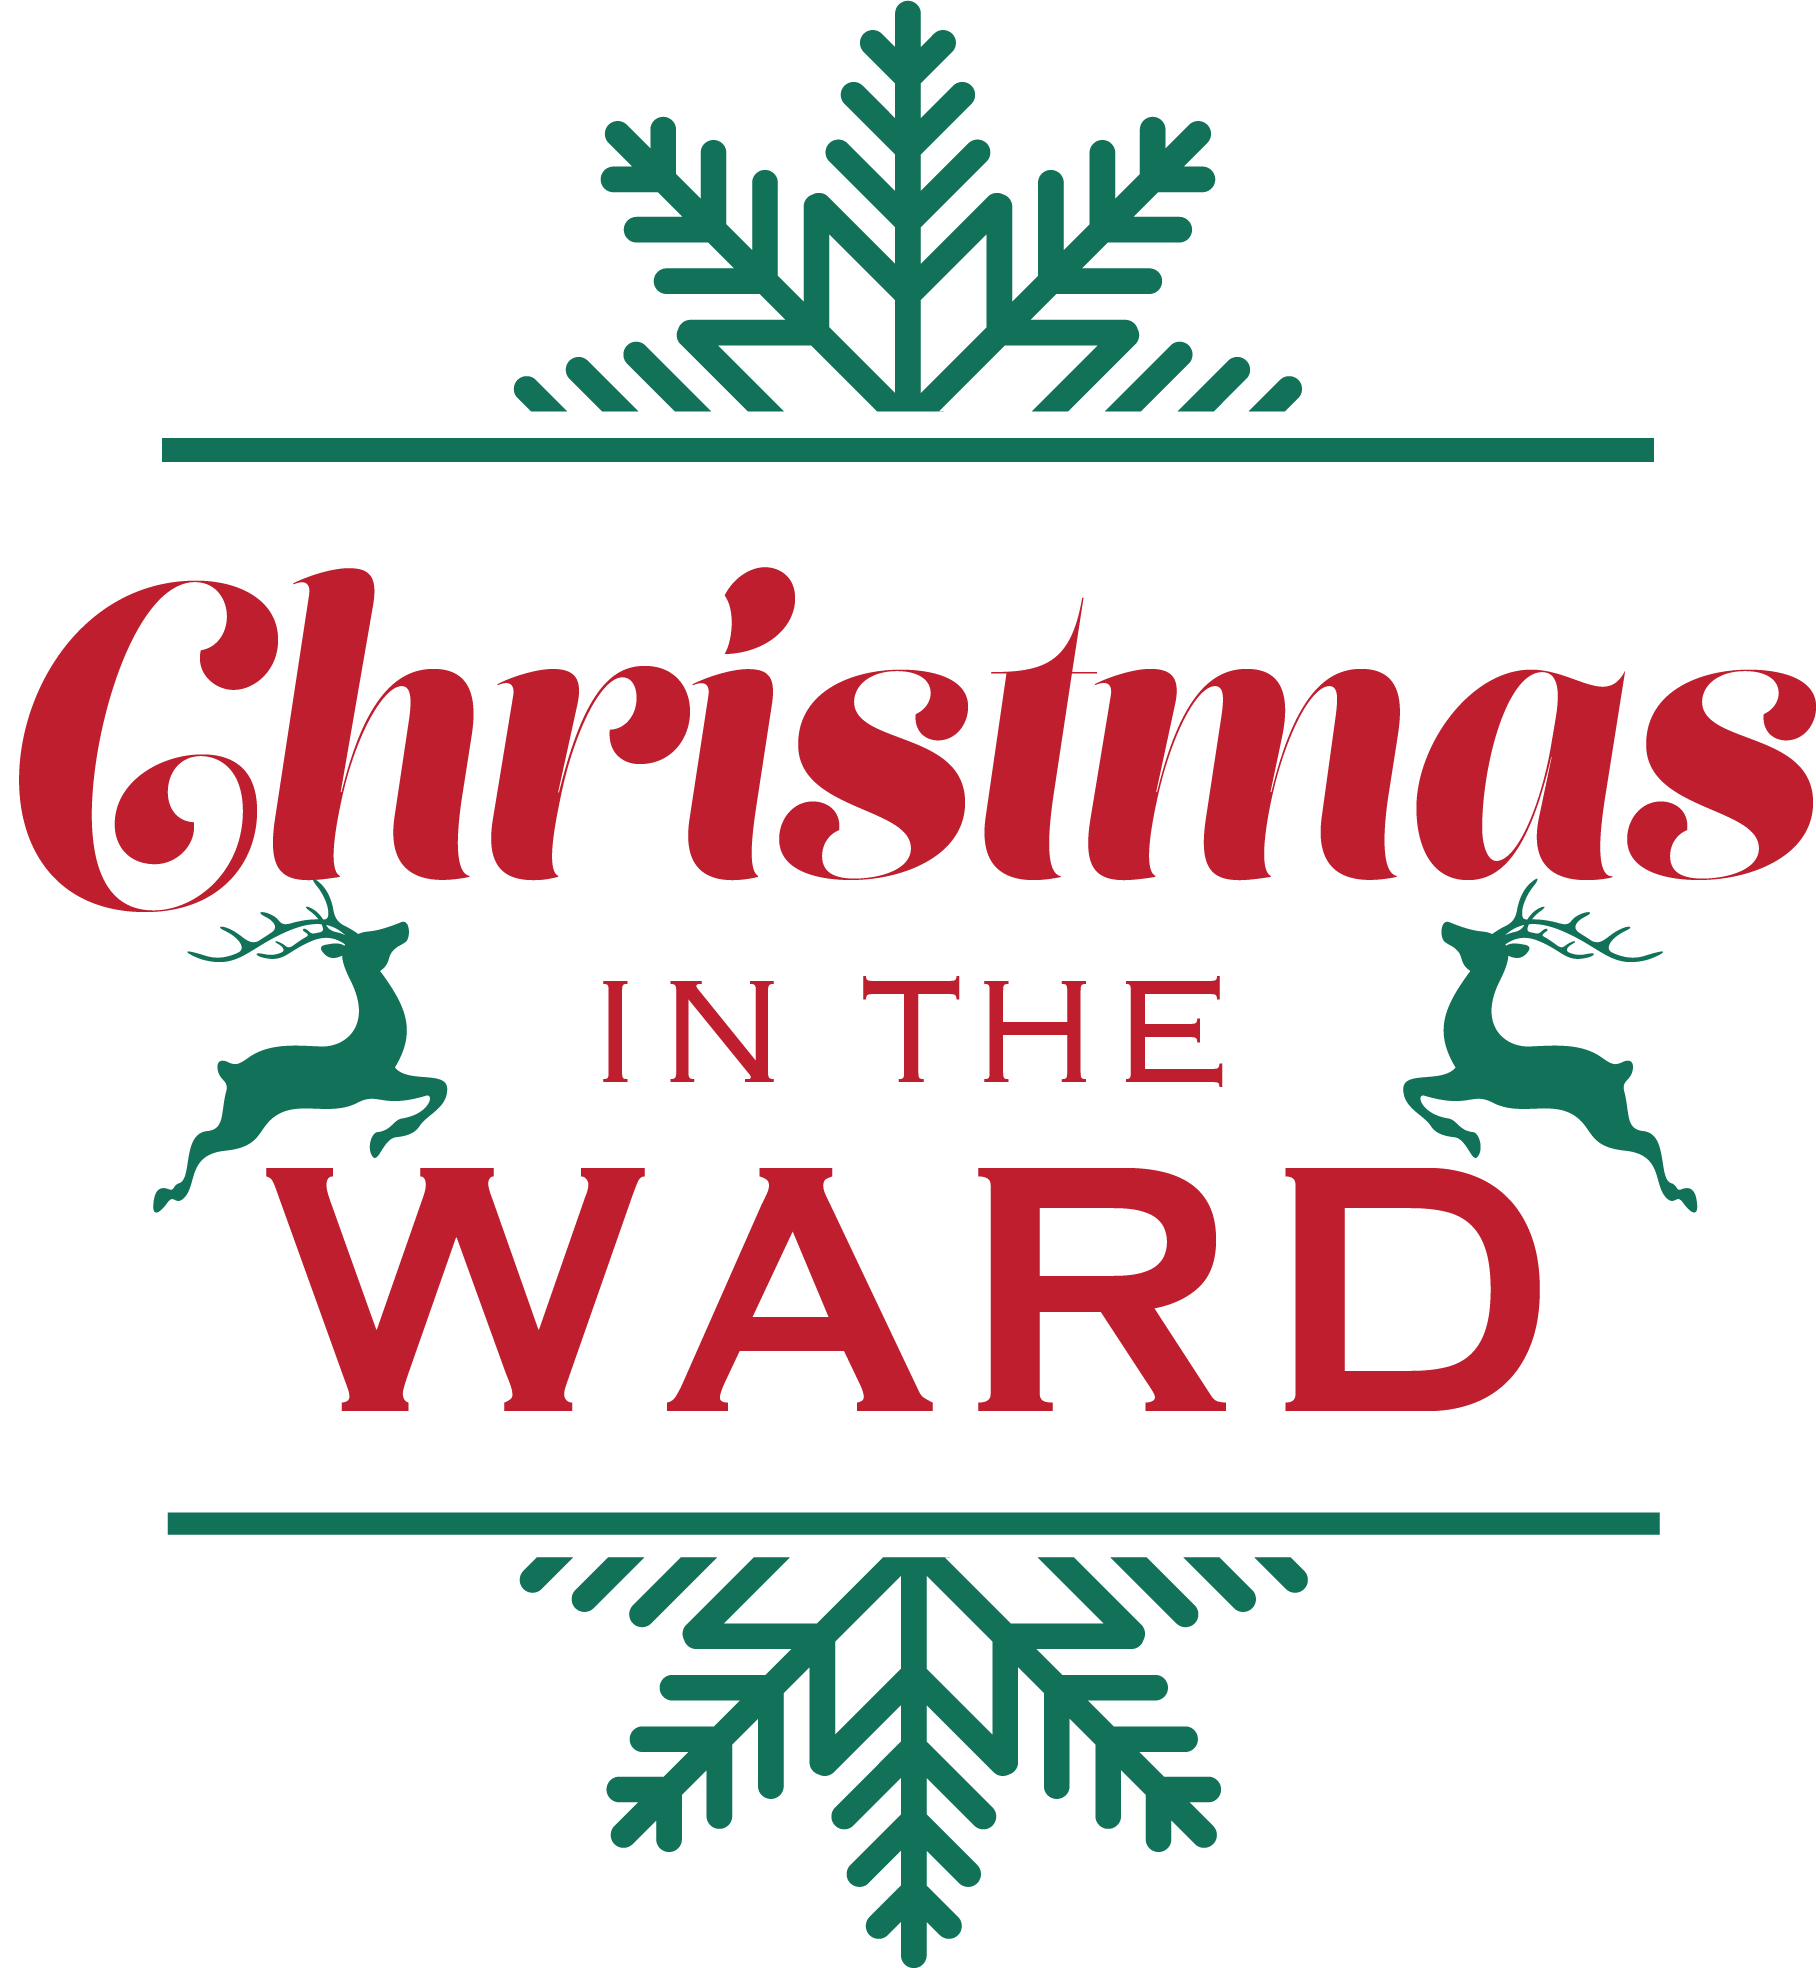 30th Anniversary of Christmas in the Ward to take place in Milwaukee's Historic Third Ward Friday, November 30, 2018